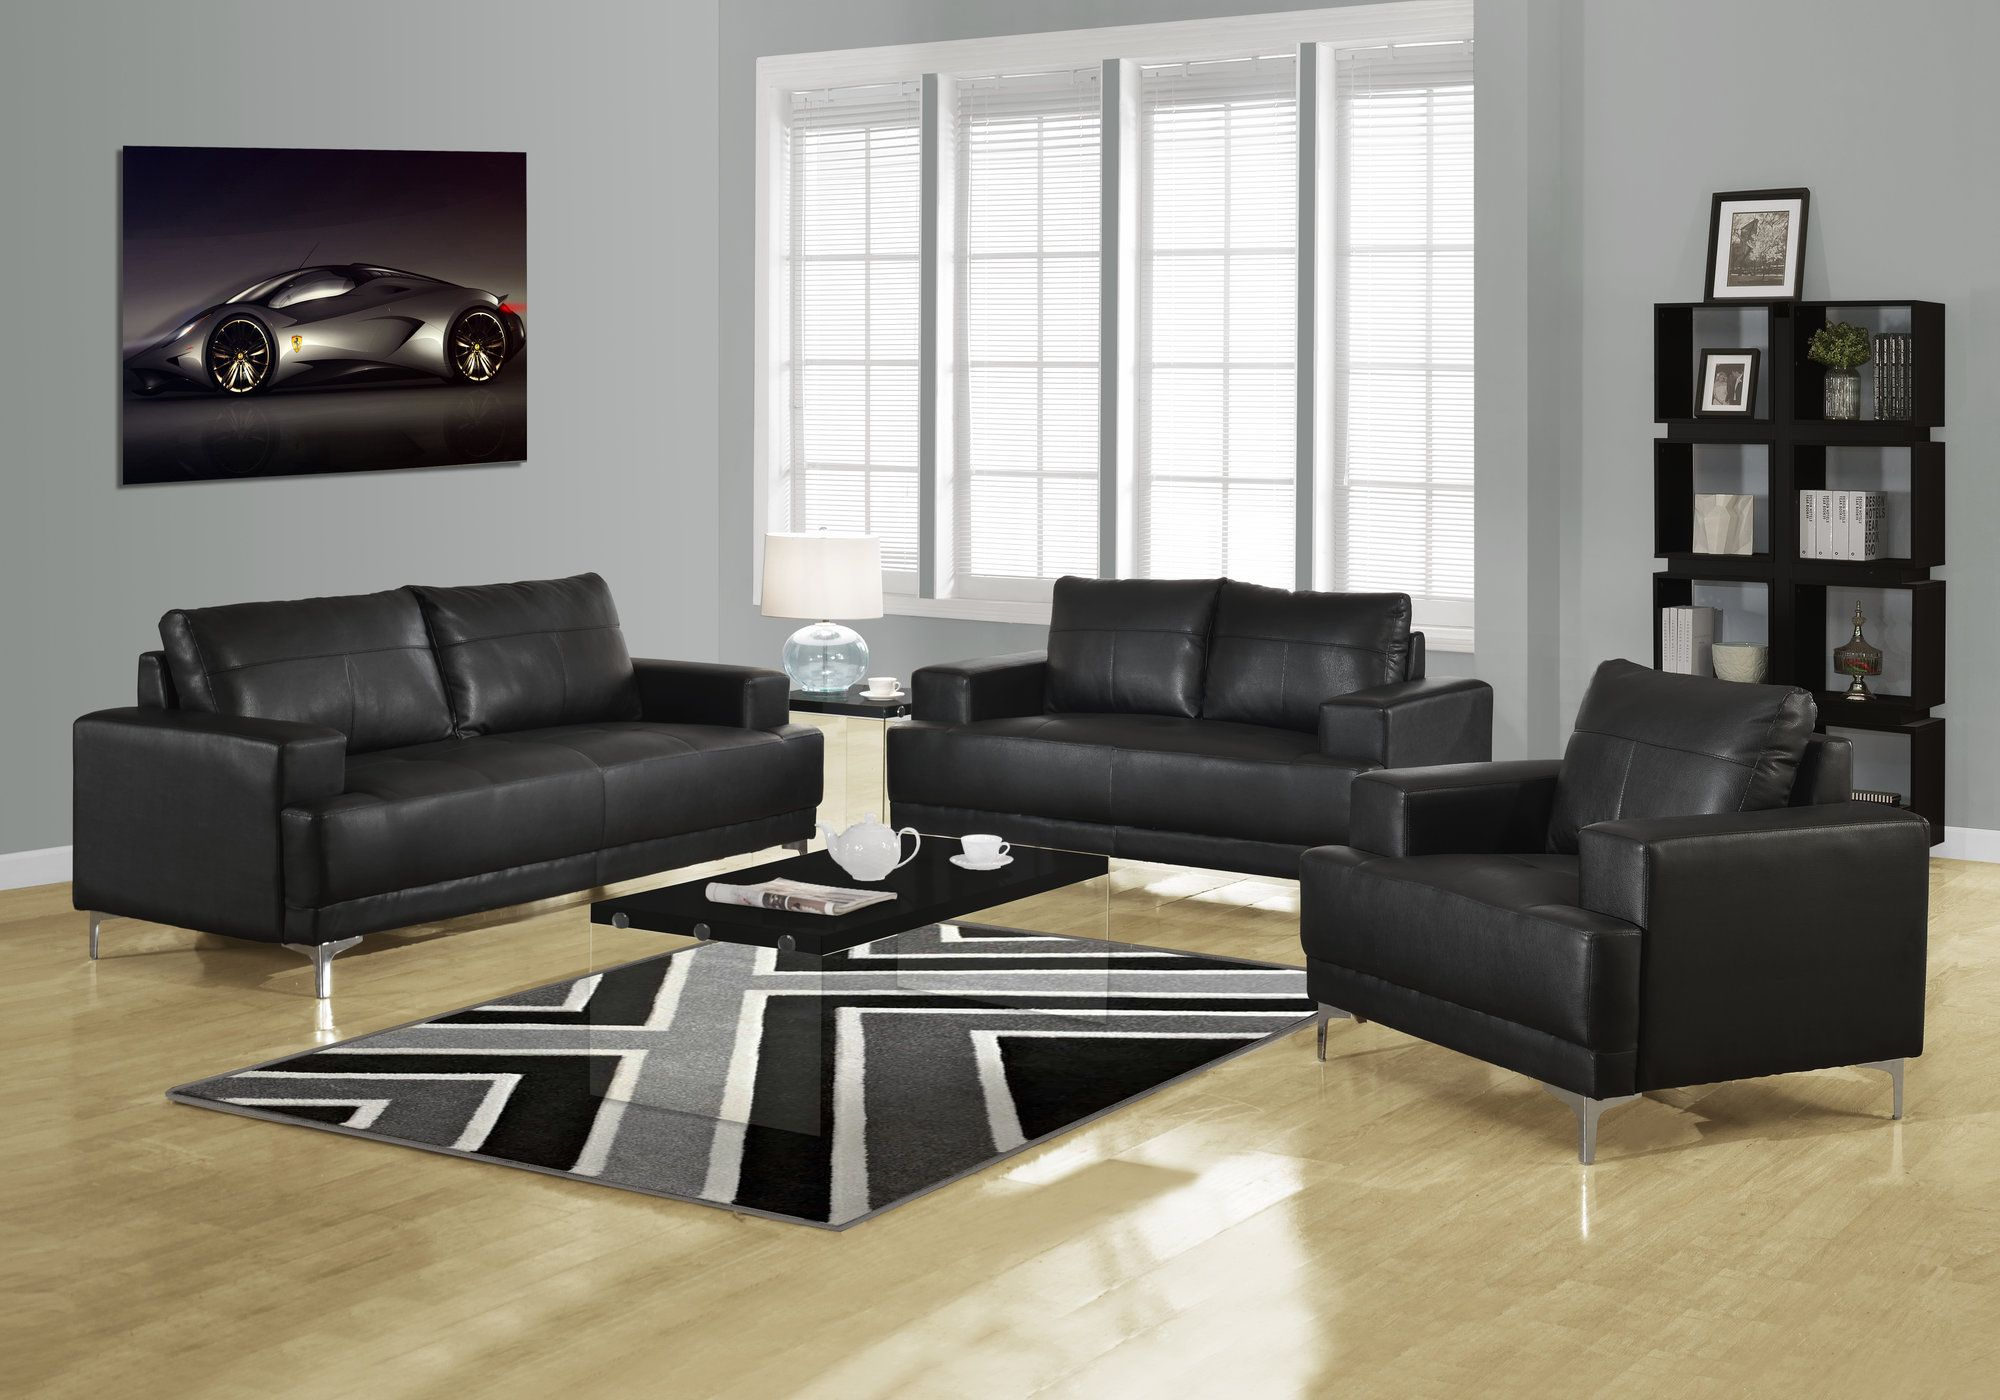 Black Bonded Leather Living Room Set